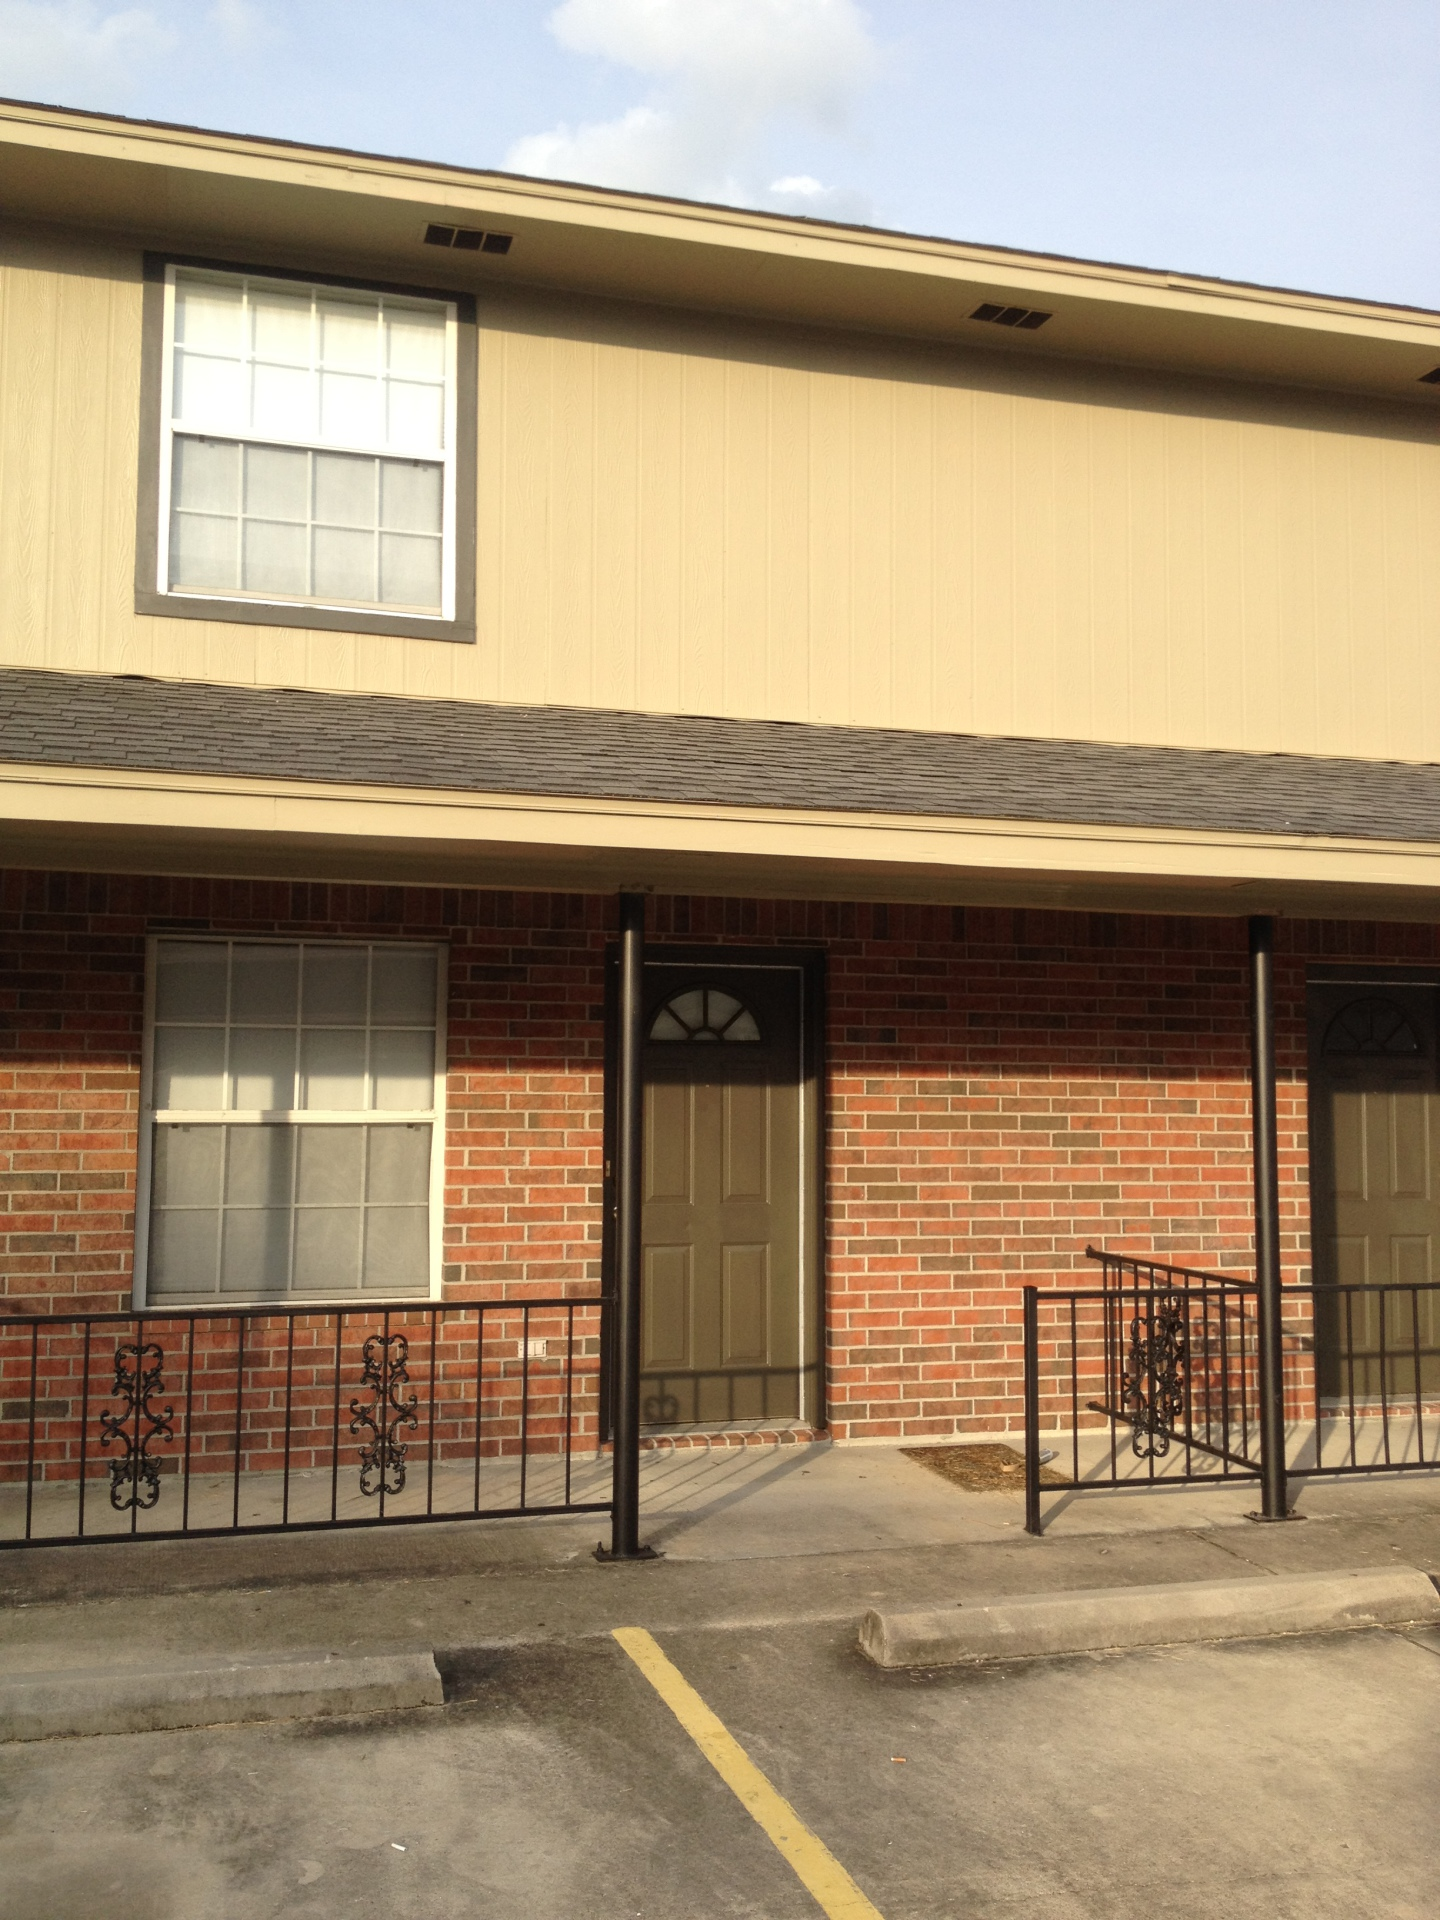 2/1 TOWNHOME $1050 mth/$500+deposit